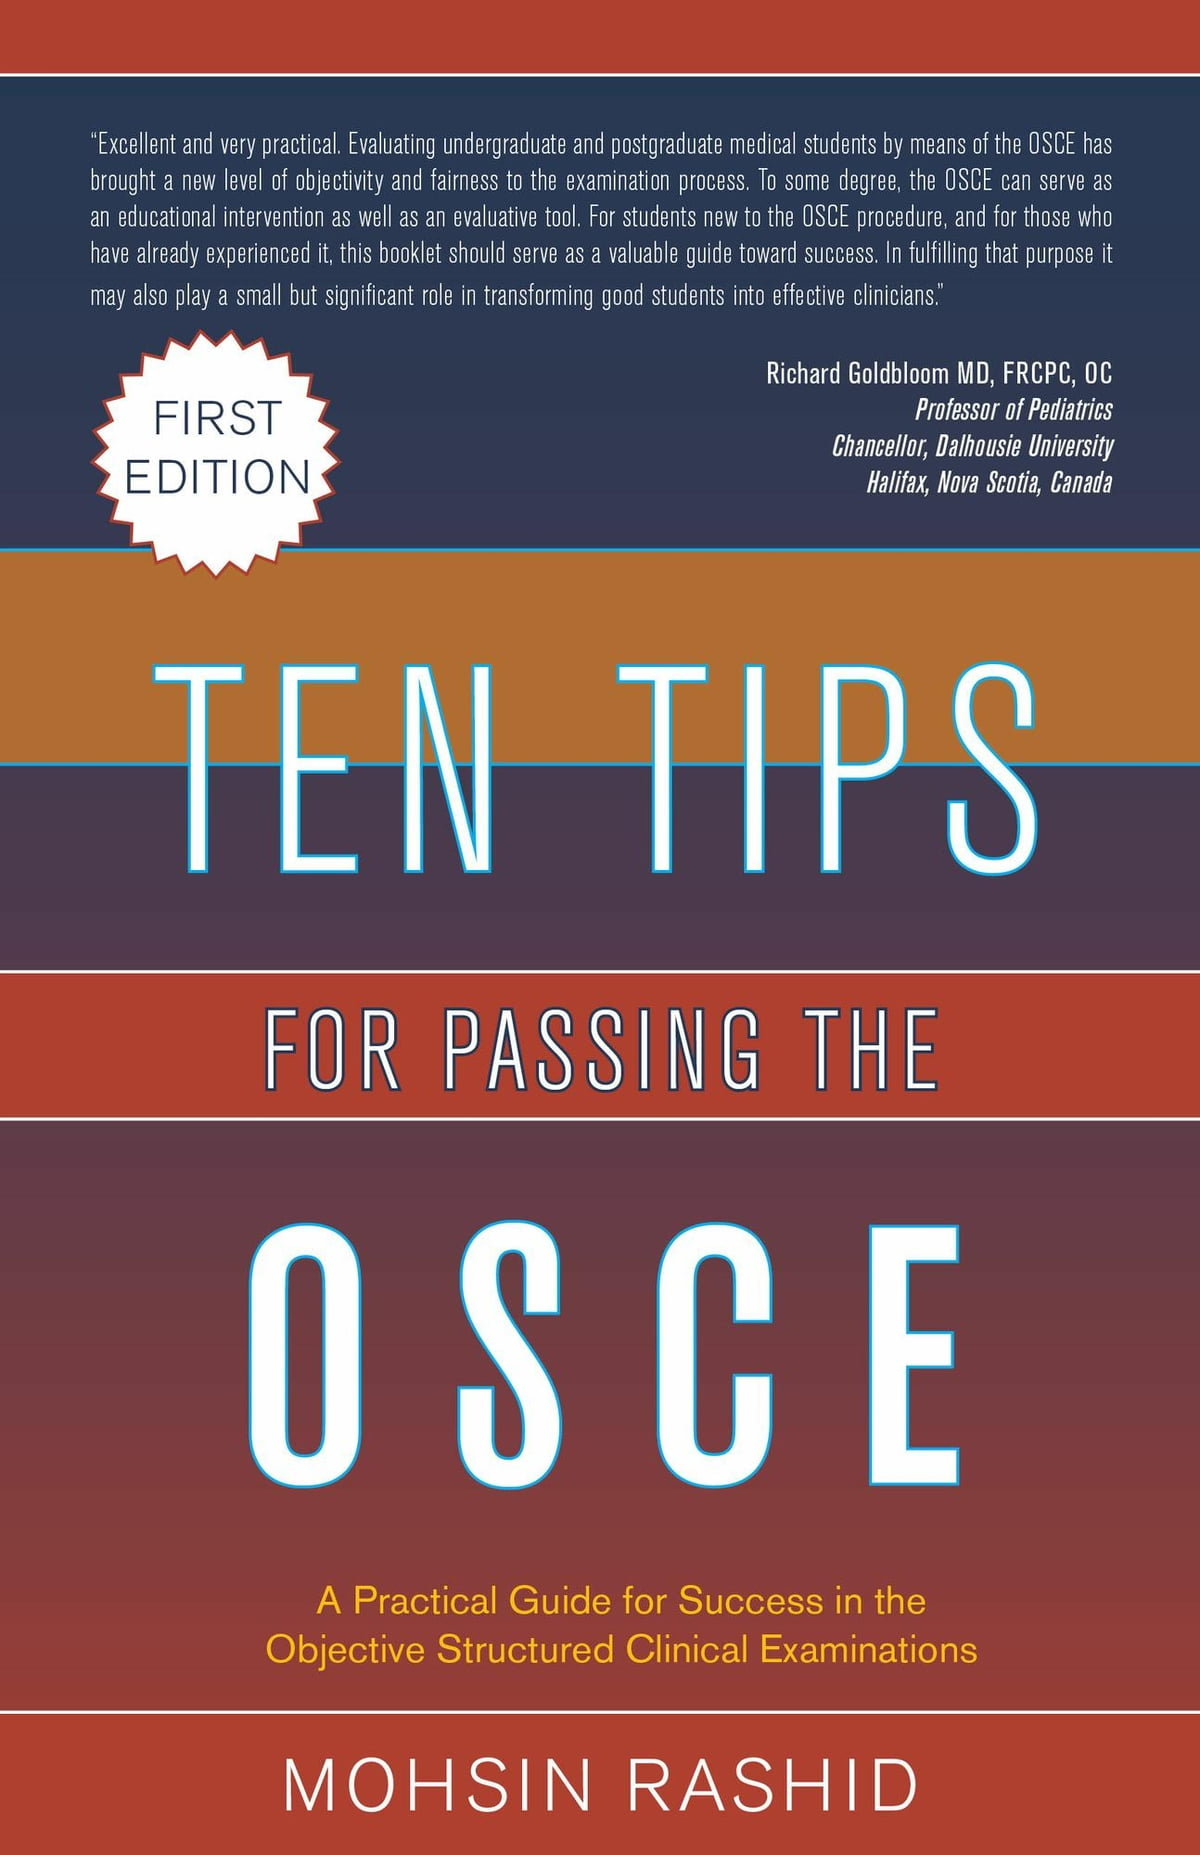 10 tips in passing the let 10 tips for passing drug test refrain from taking drugs 72 hours prior to the test if you are aware of an oncoming drug test, you should stay away from drugs for at least 72 hours.